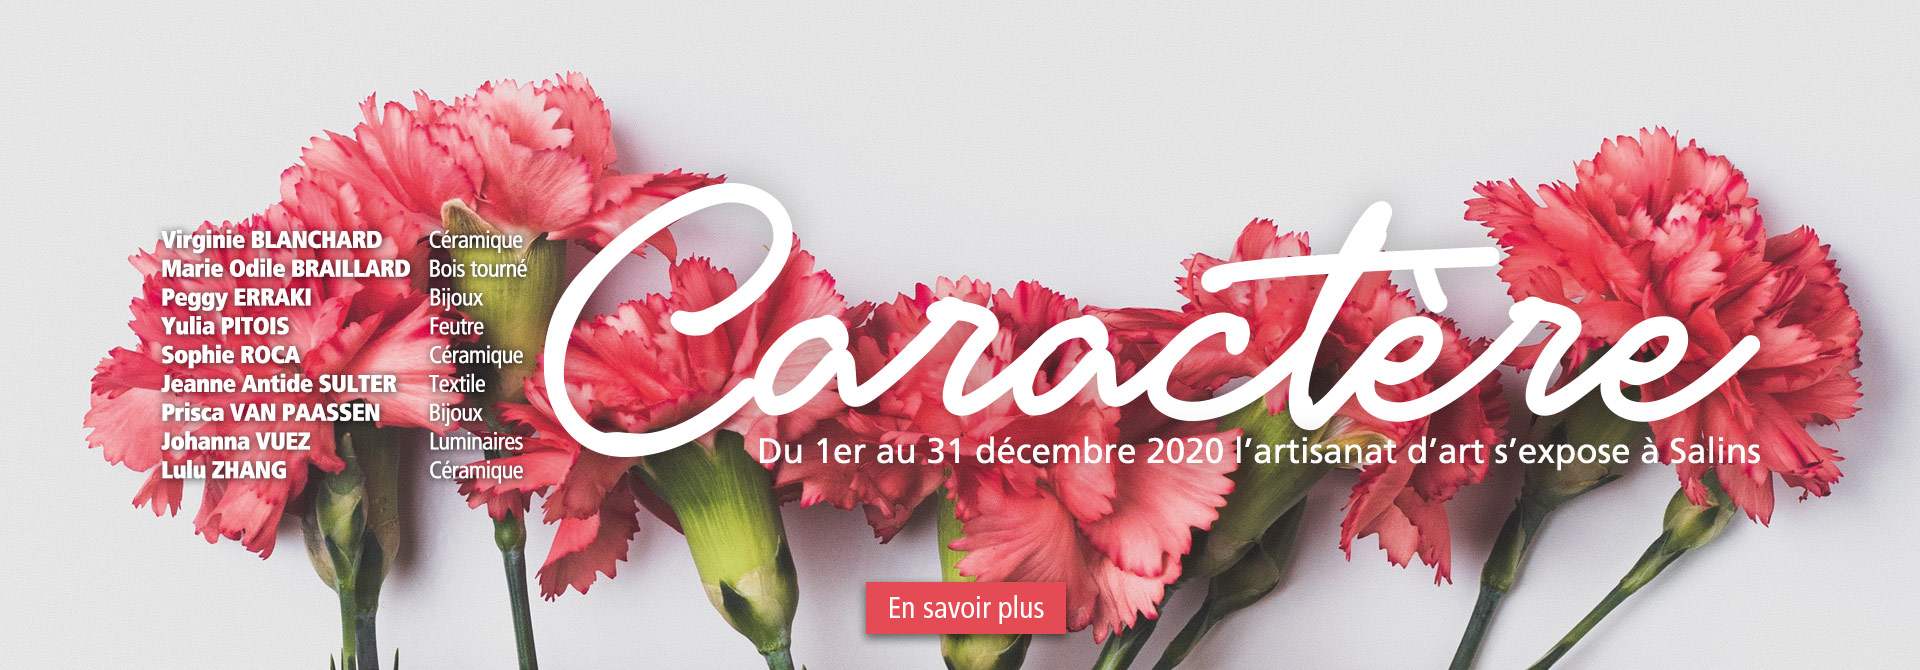 Le Bocal - expo de Nov. 2020 (virtuelle pour cause de confinement)